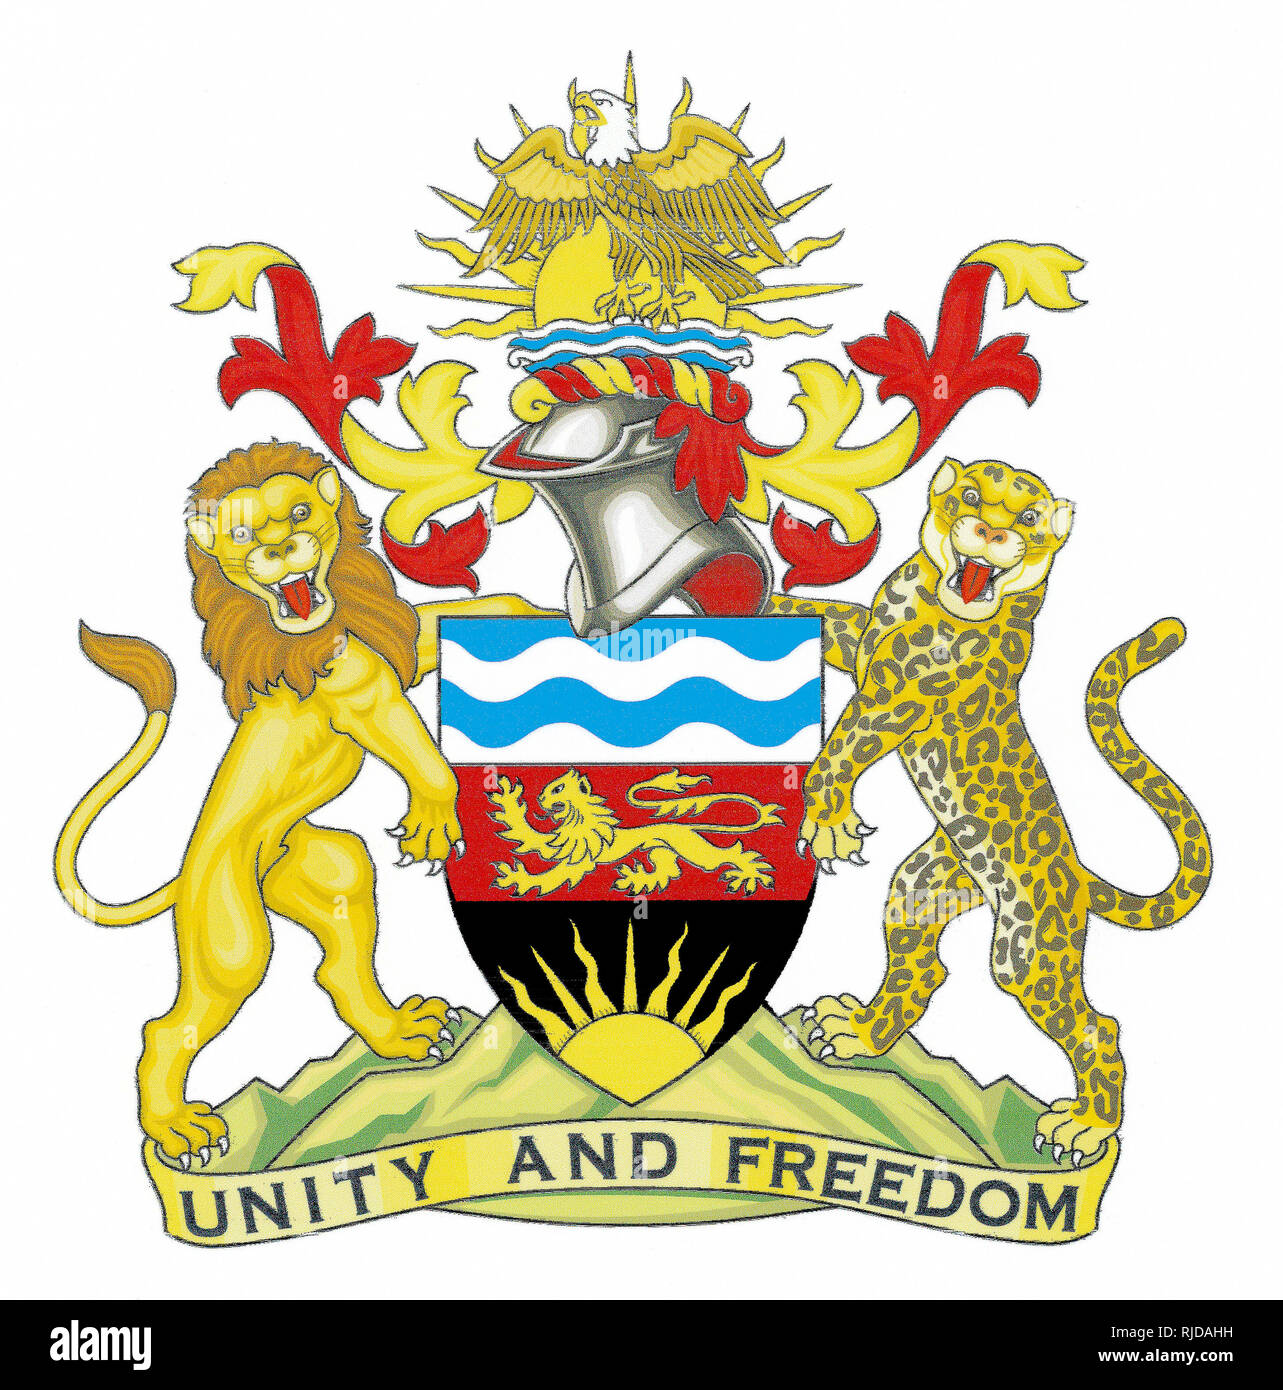 National coat of arms of the Republic of Malawi. - Stock Image